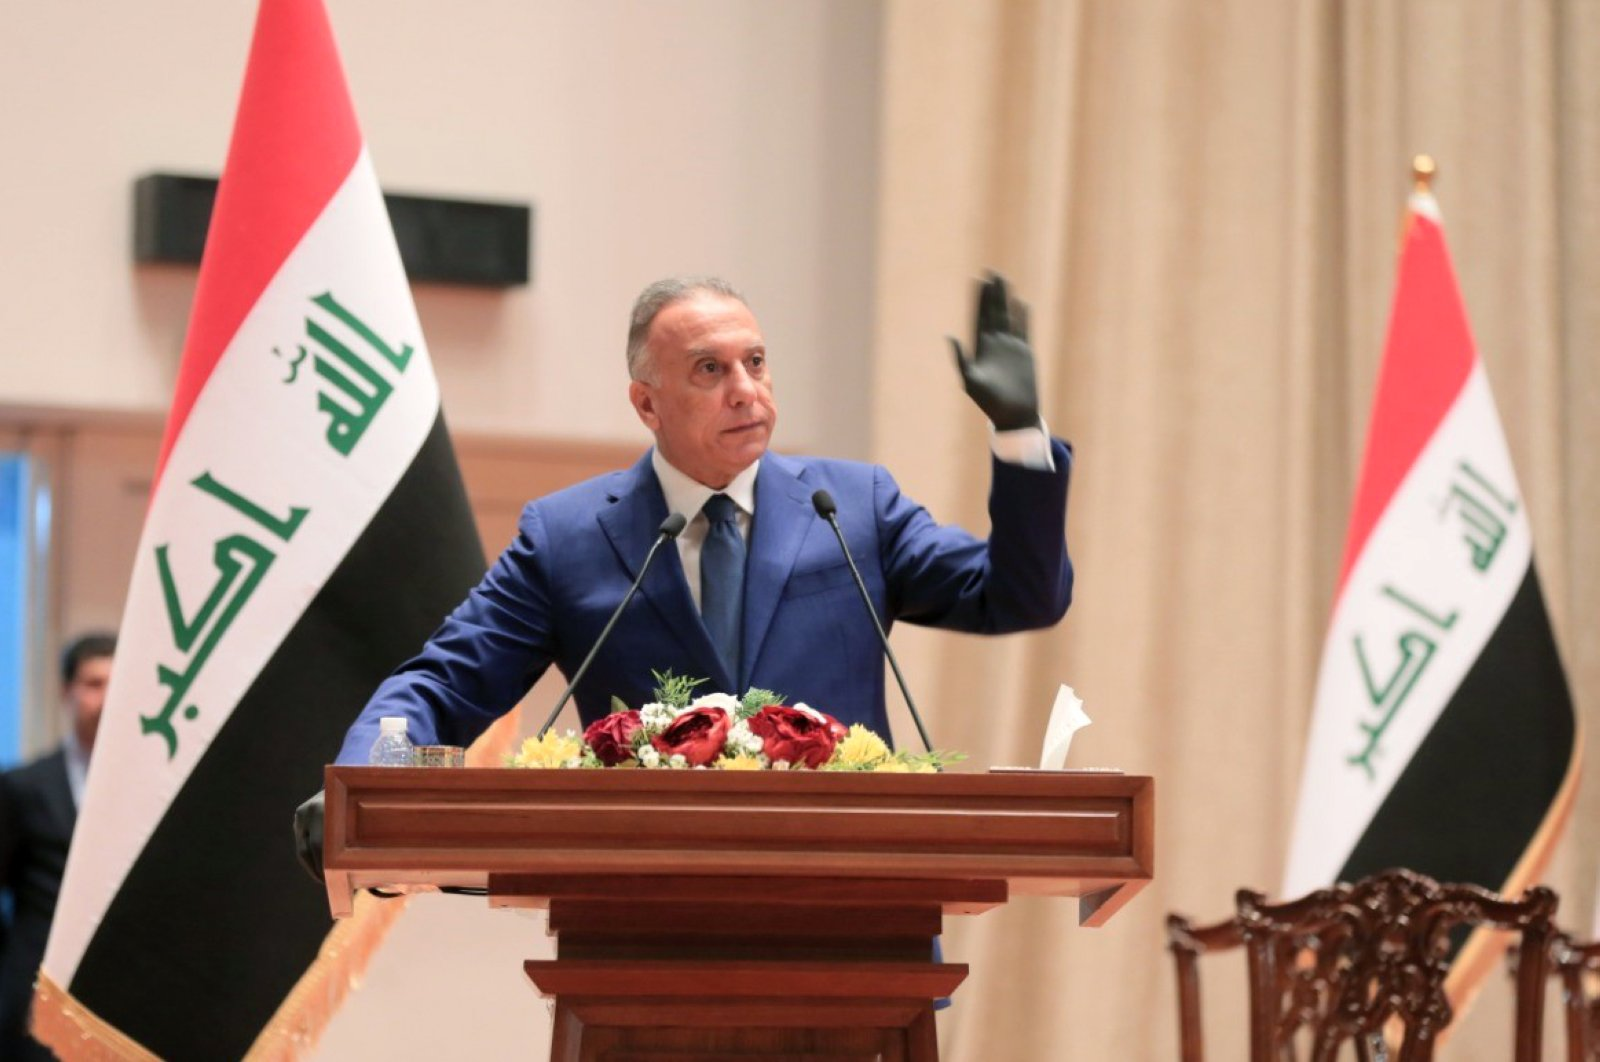 Iraqi Prime Minister Mustafa al-Kadhimi taking the oath in front of the parliament during an overnight session in Baghdad, May 7, 2020. (AFP)